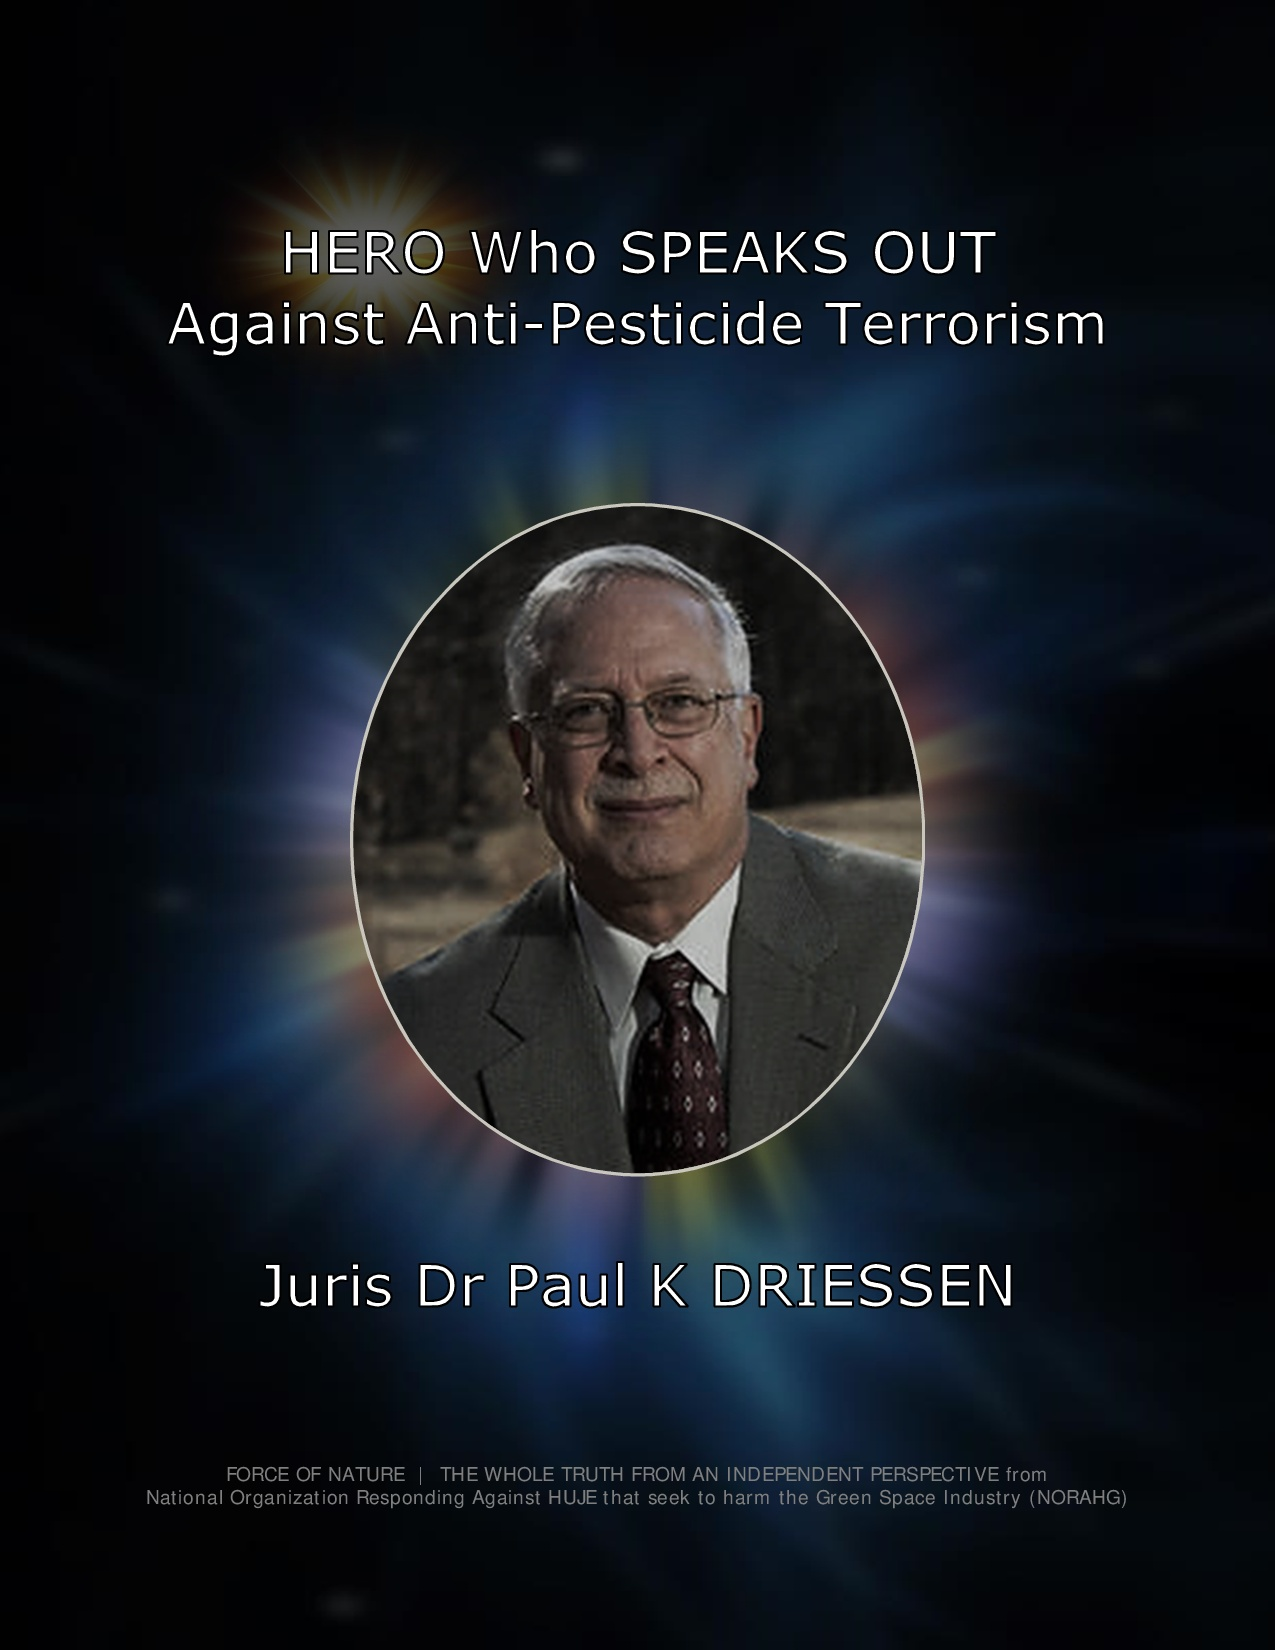 DRIESSEN, Juris Dr Paul K